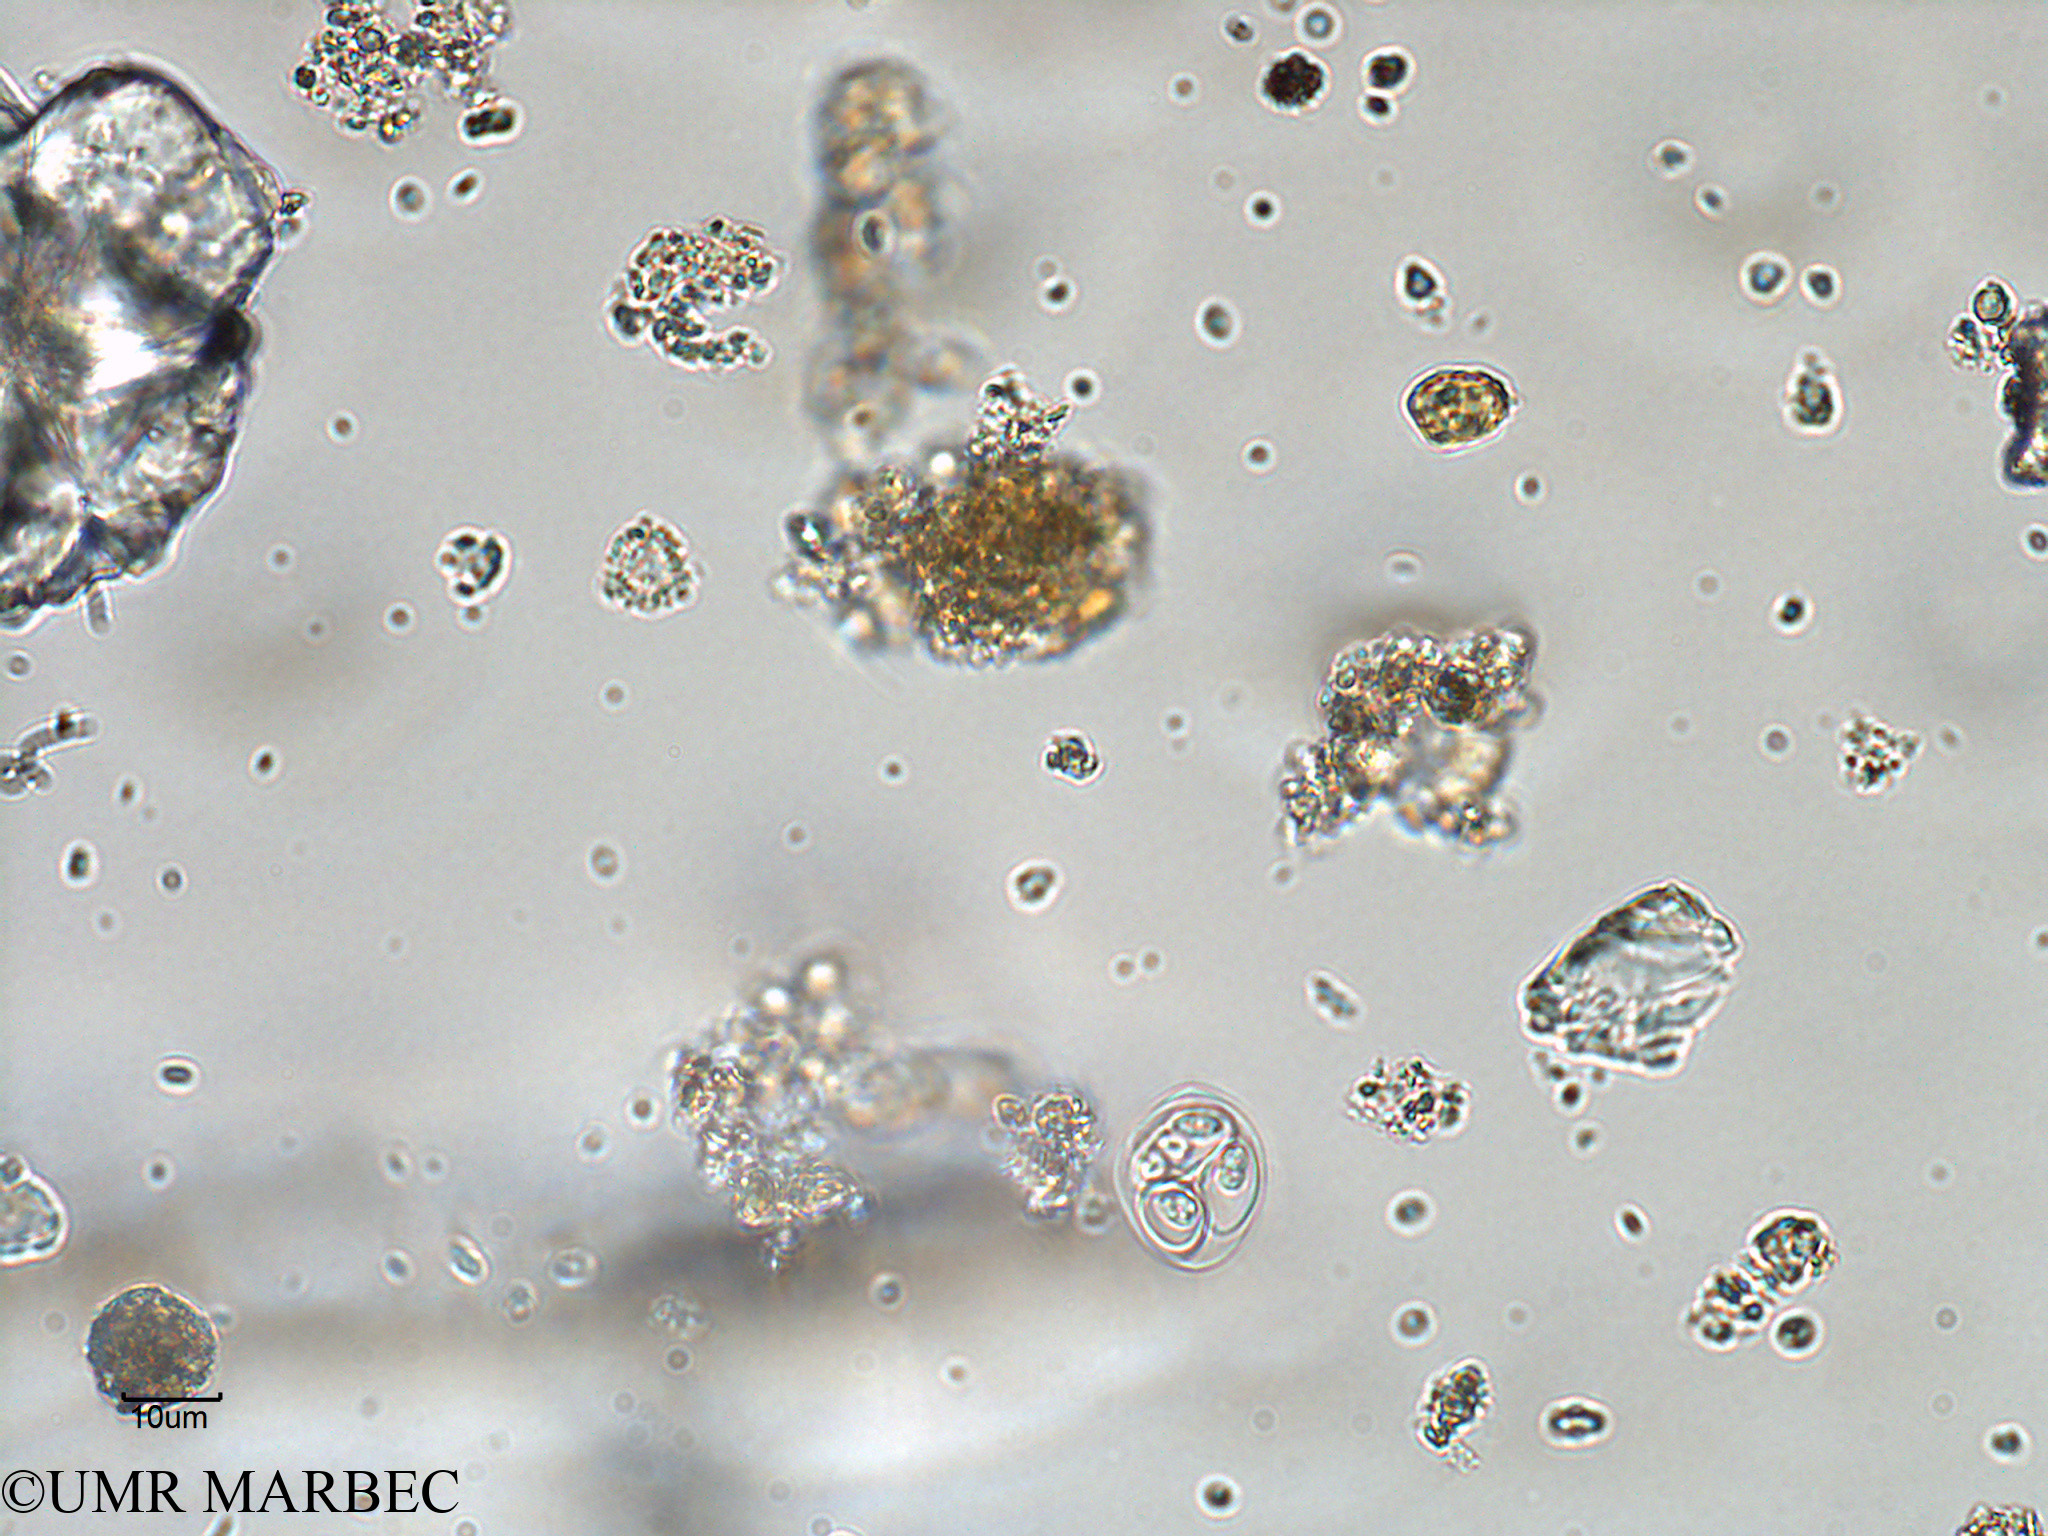 phyto/Bizerte/bizerte_bay/RISCO February 2015/Oocystis sp (ancien Baie_T1-A_oocystis-4).tif(copy).jpg